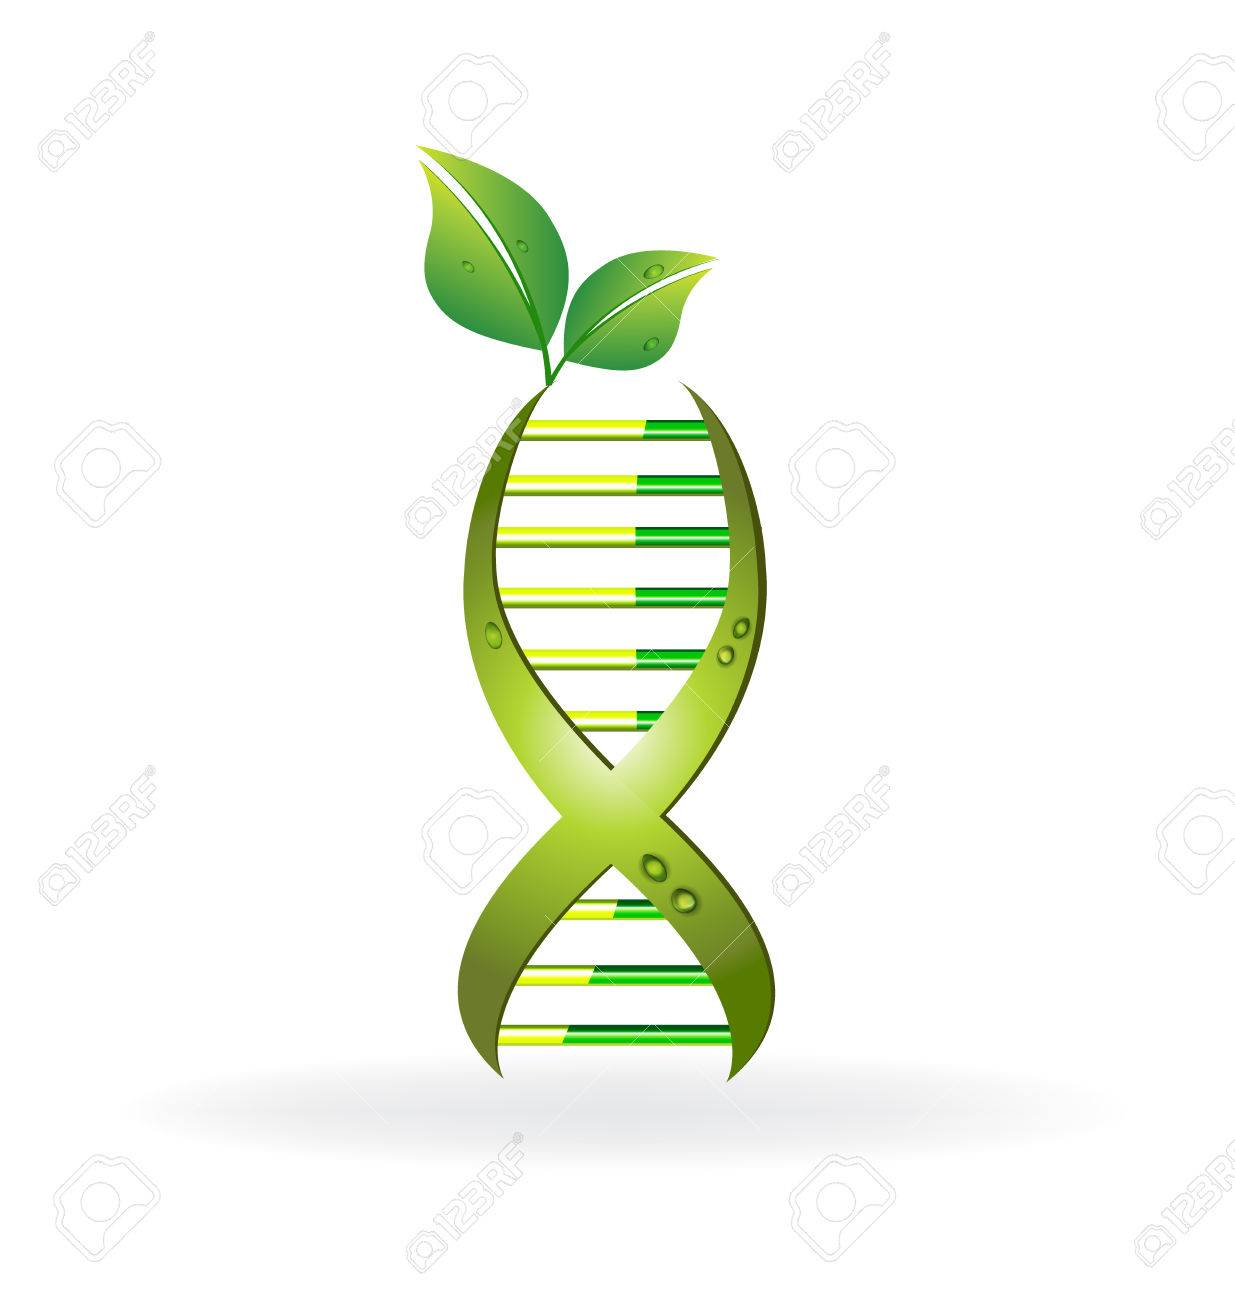 DNA cell with green leafs icon vector design - 66204057